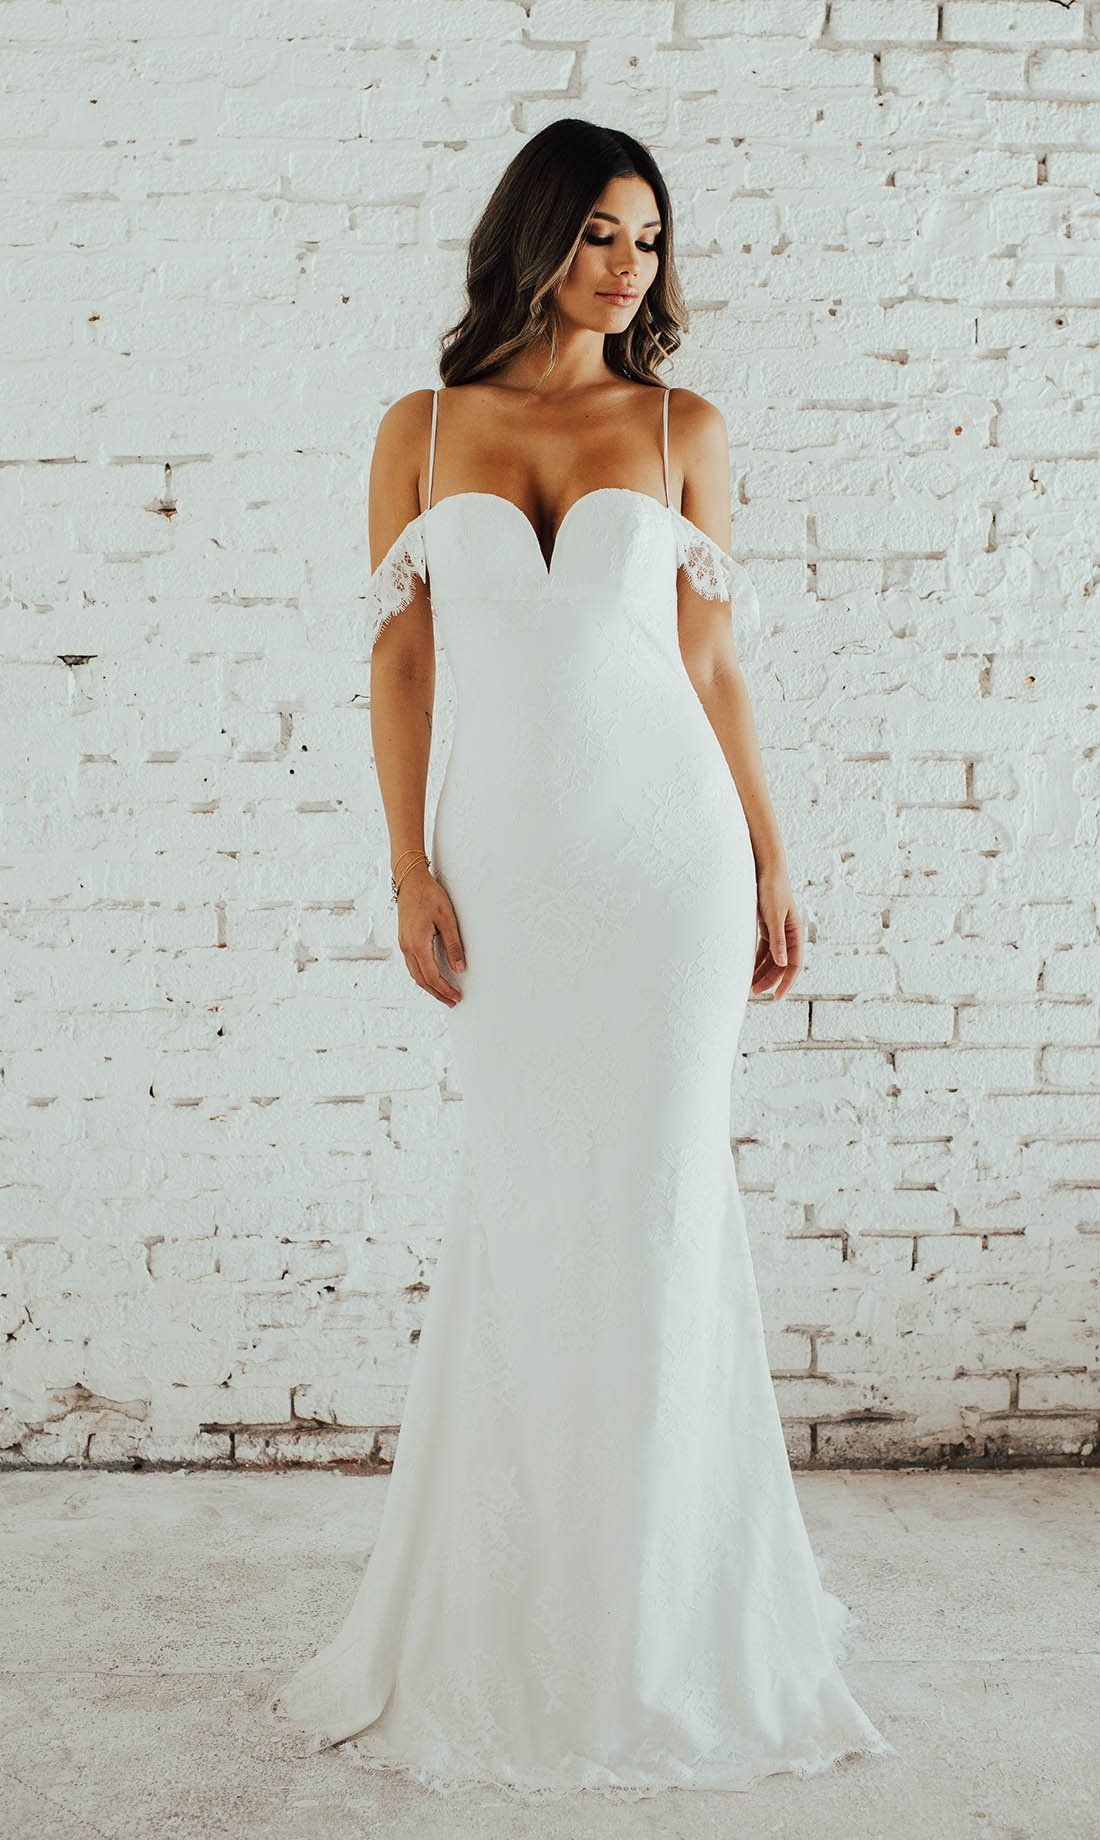 bfb0765b0c8 Madrid by Katie May Bridal